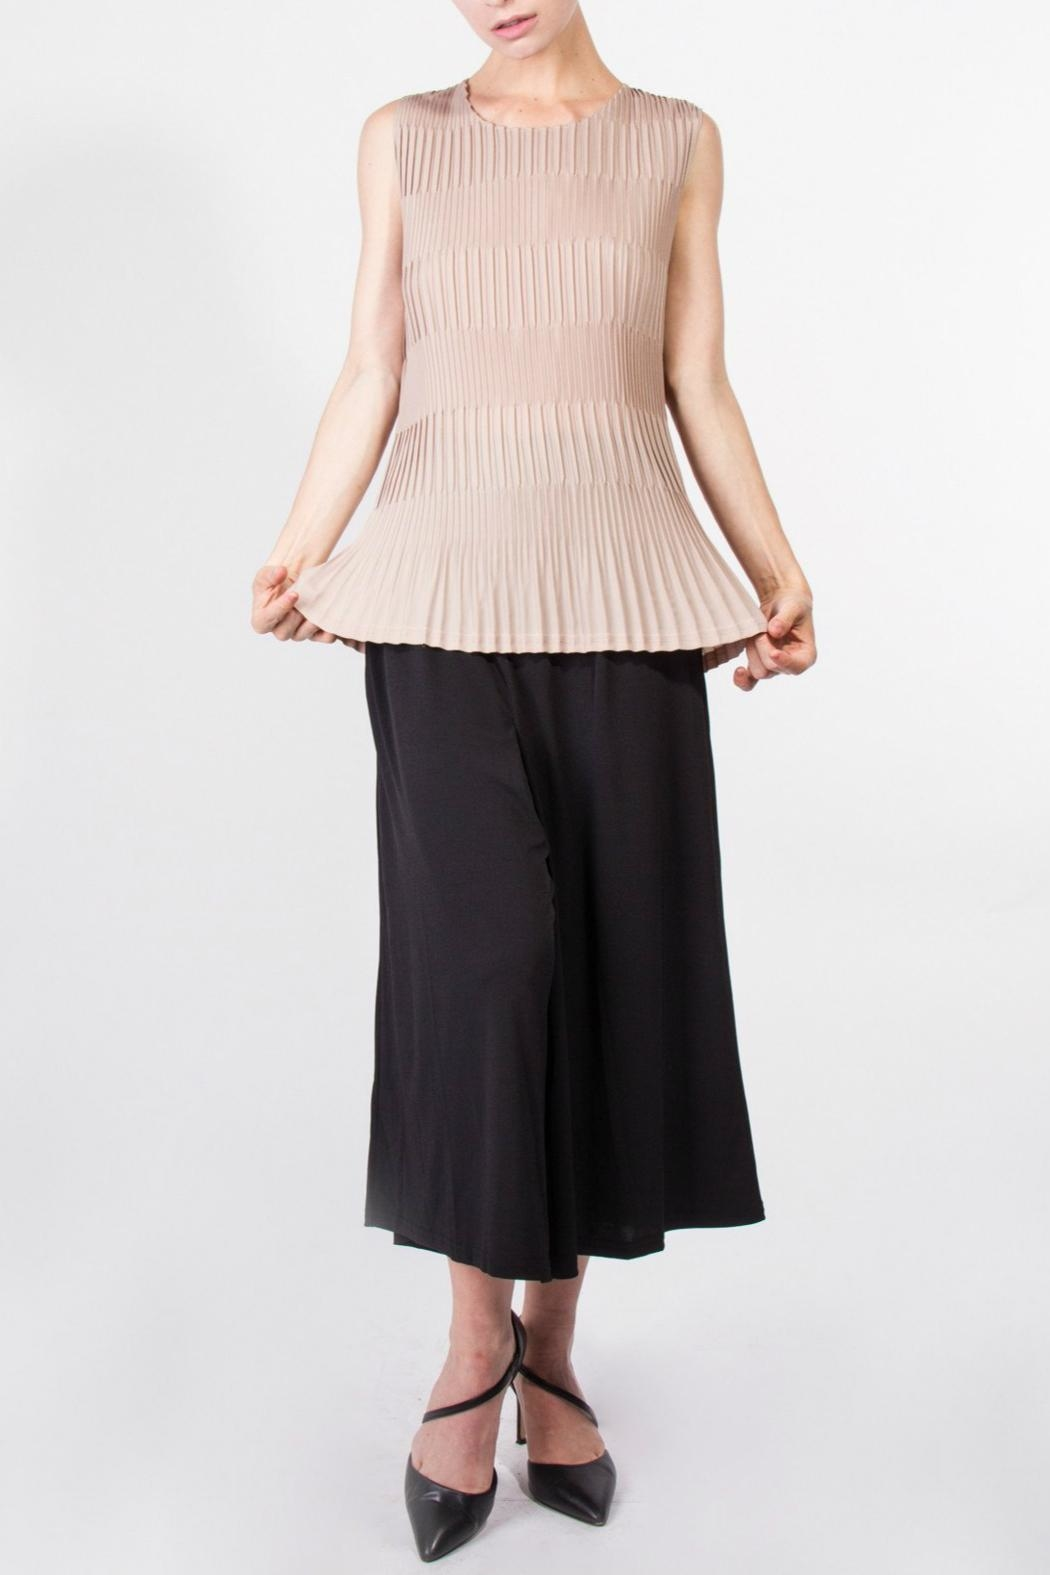 01e21f5c4e6649 Yuki Tokyo Adriana Pleated Tops from Crouch End by Scarecrow ...